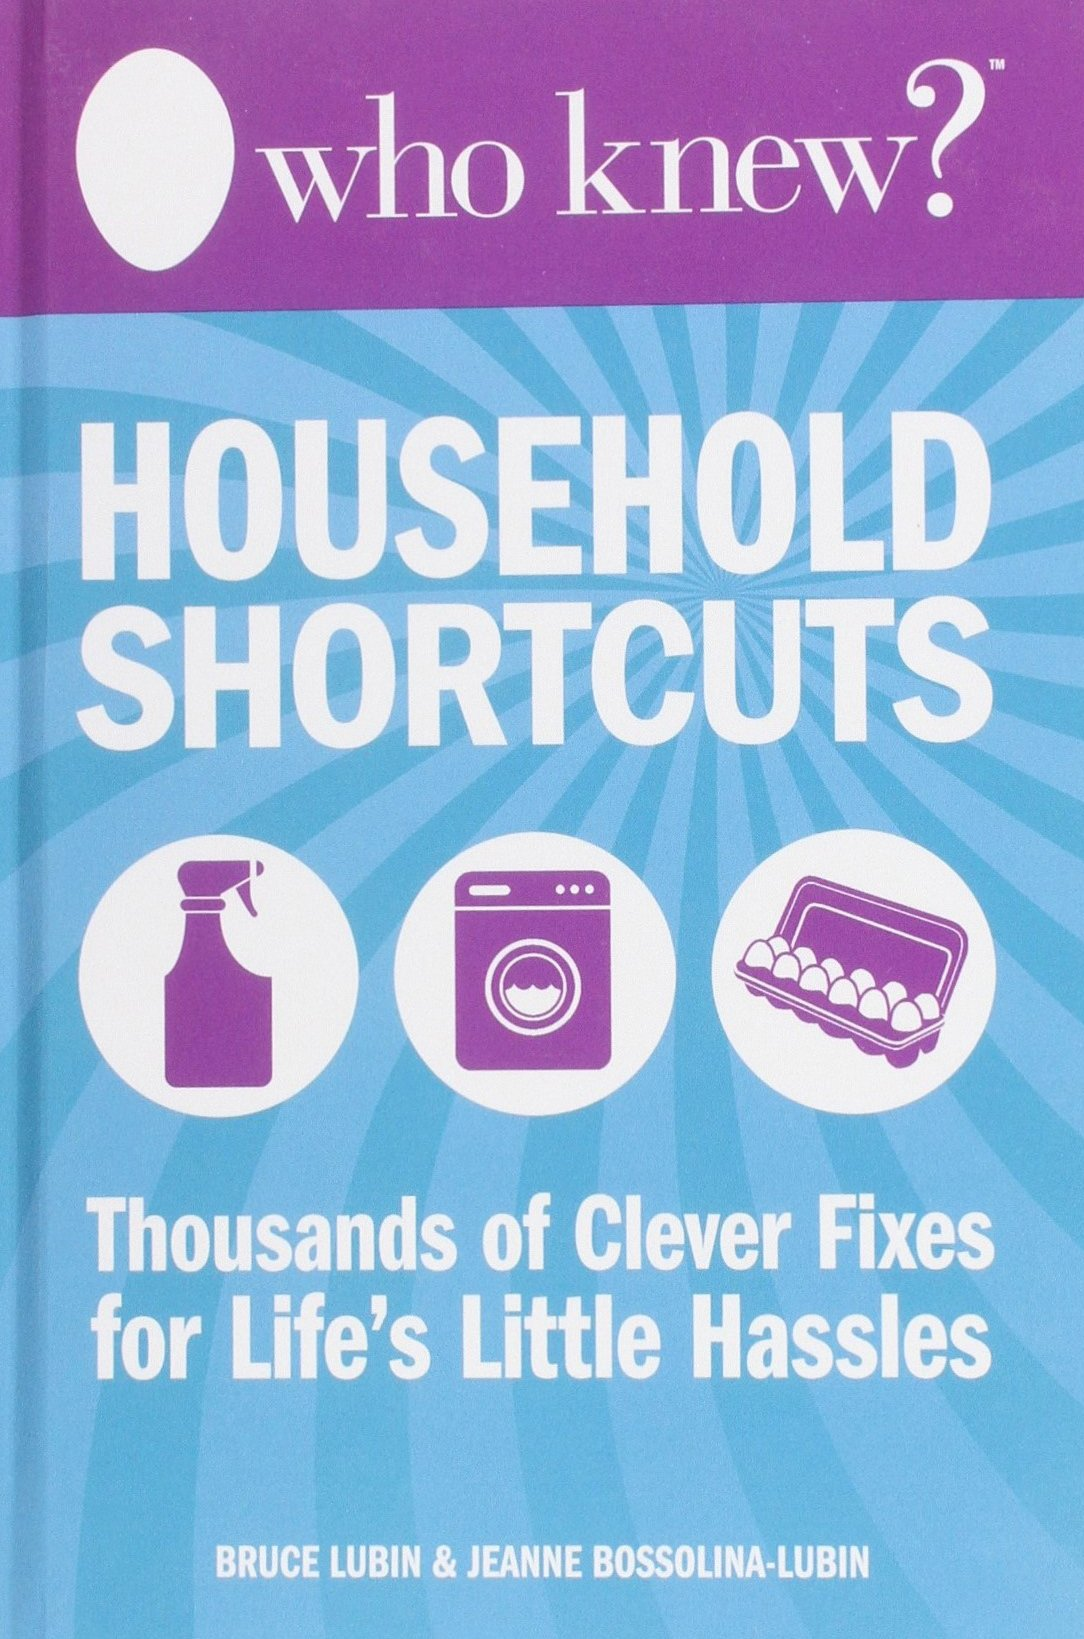 Household Shortcuts: Thousands of Clever Fixes for Life's Little Hassles:  Bruce Lubin, Jeanne Bossolina-lubin: 9780988326477: Amazon.com: Books